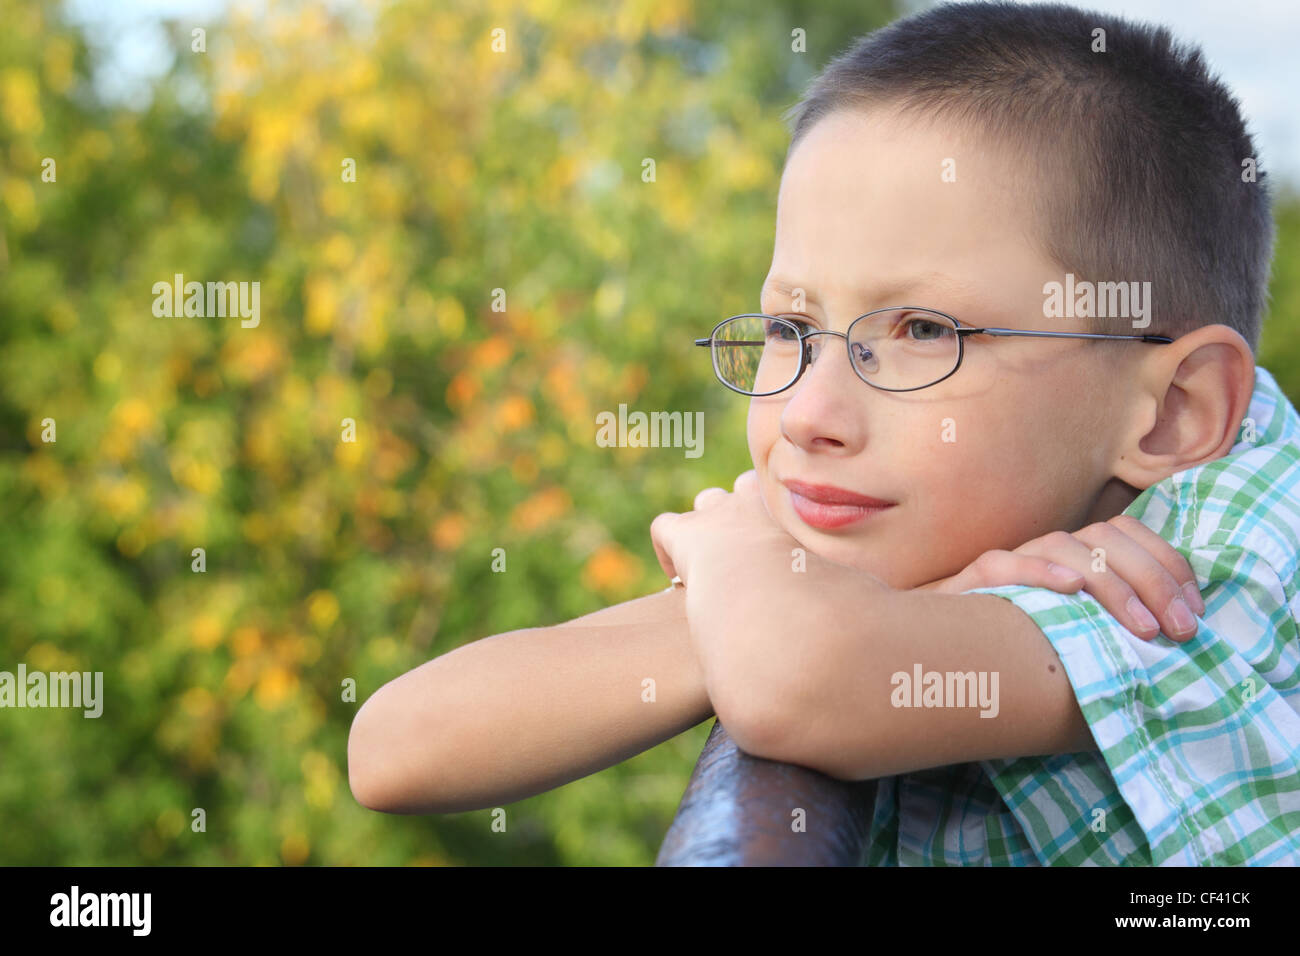 little boy is lean elbow on bridge fence and looking forward - Stock Image